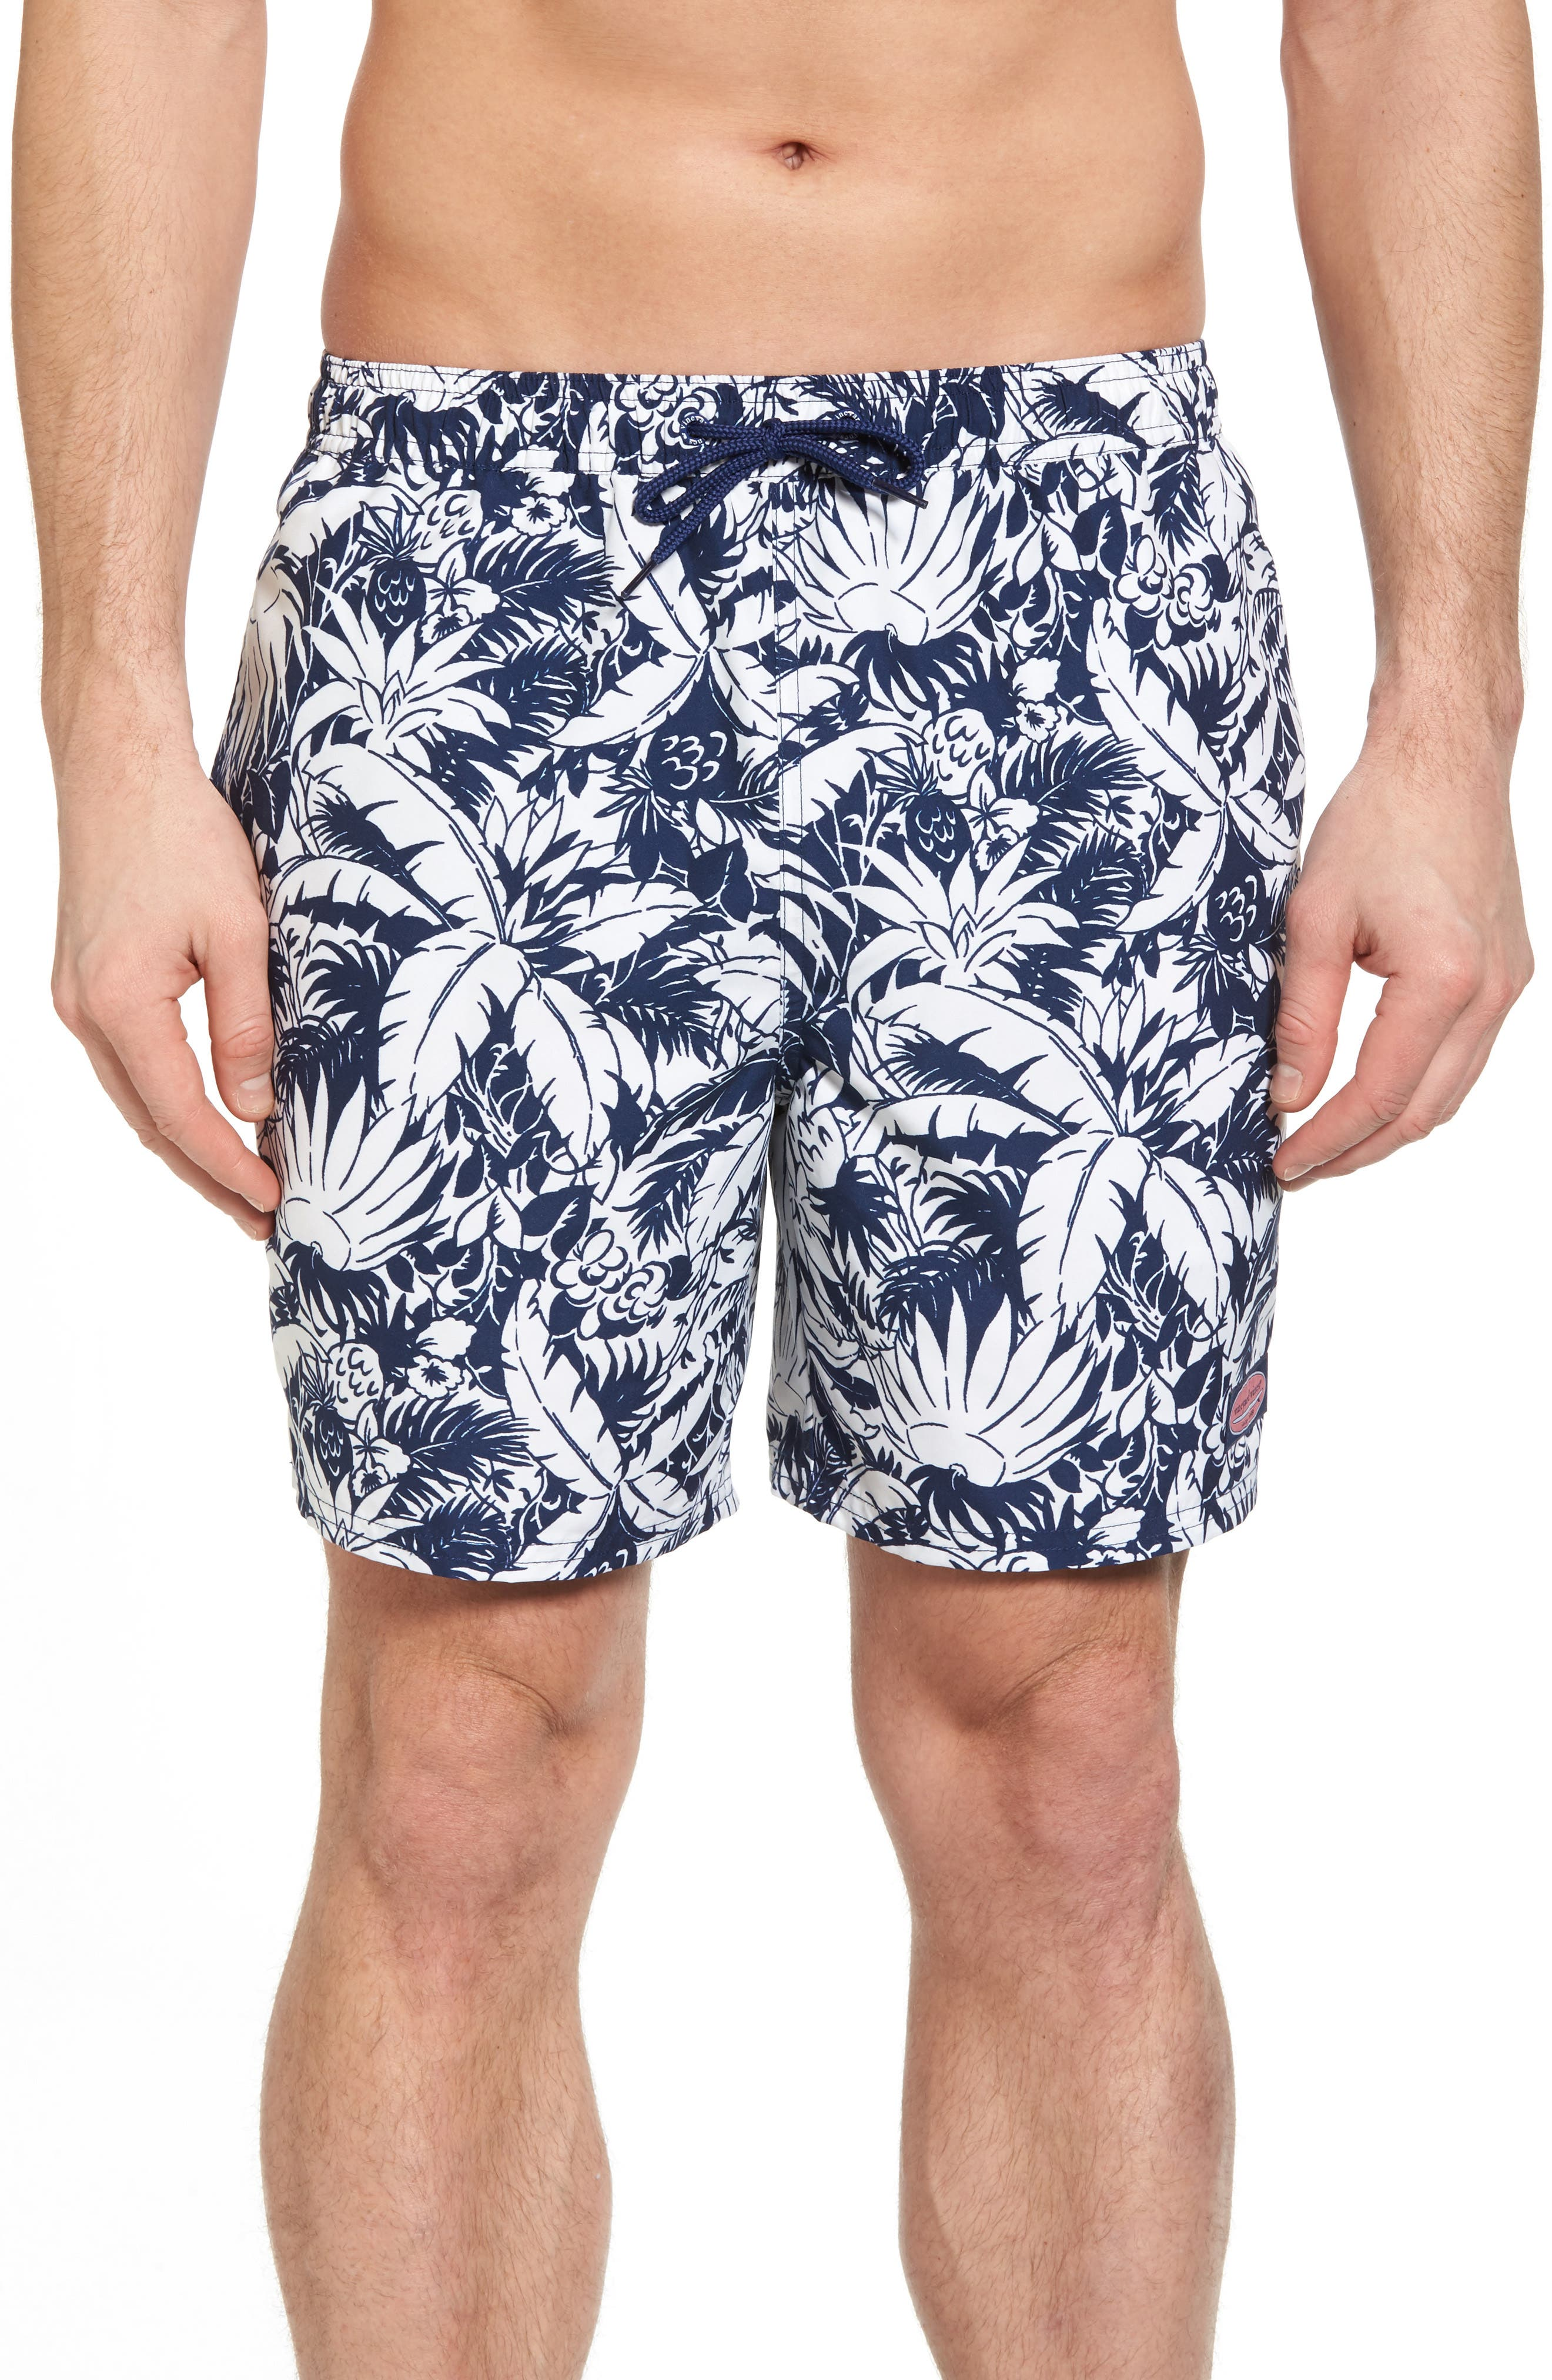 Chappy Pineapple in Palms Swim Trunks,                             Main thumbnail 1, color,                             Deep Bay